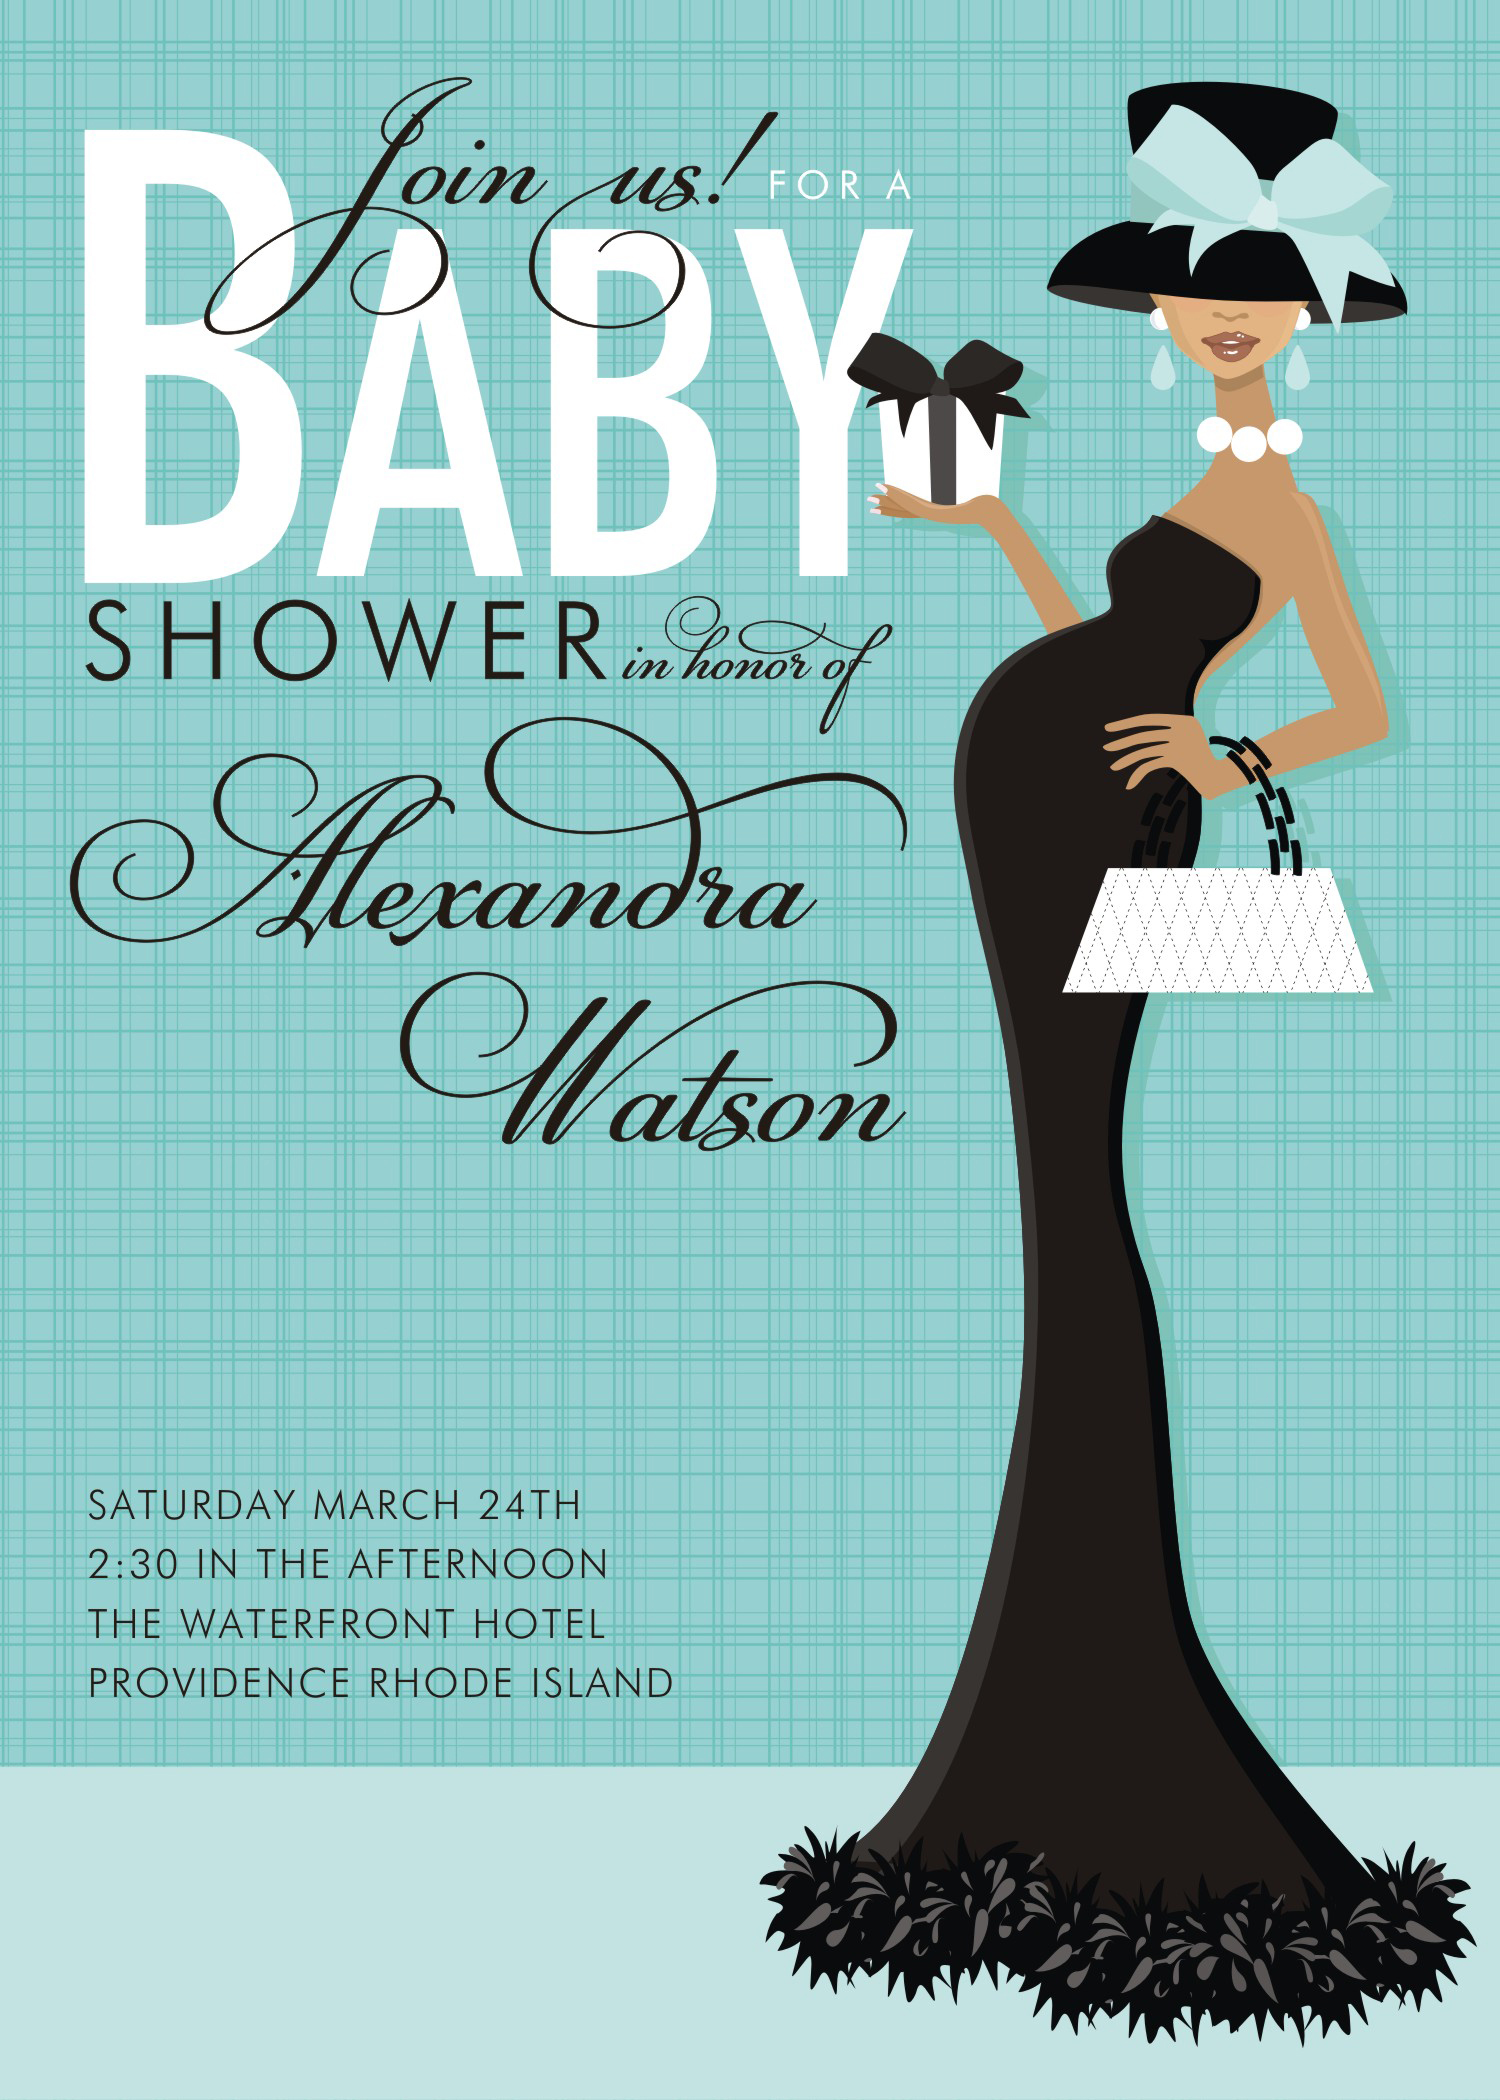 Full Size of Baby Shower:sturdy Baby Shower Invitation Template Image Concepts Baby Shower Invitation Template As Well As Baby Shower Host With Baby Shower Stuff Plus Baby Shower Para Niño Together With Diy Baby Shower Invitations